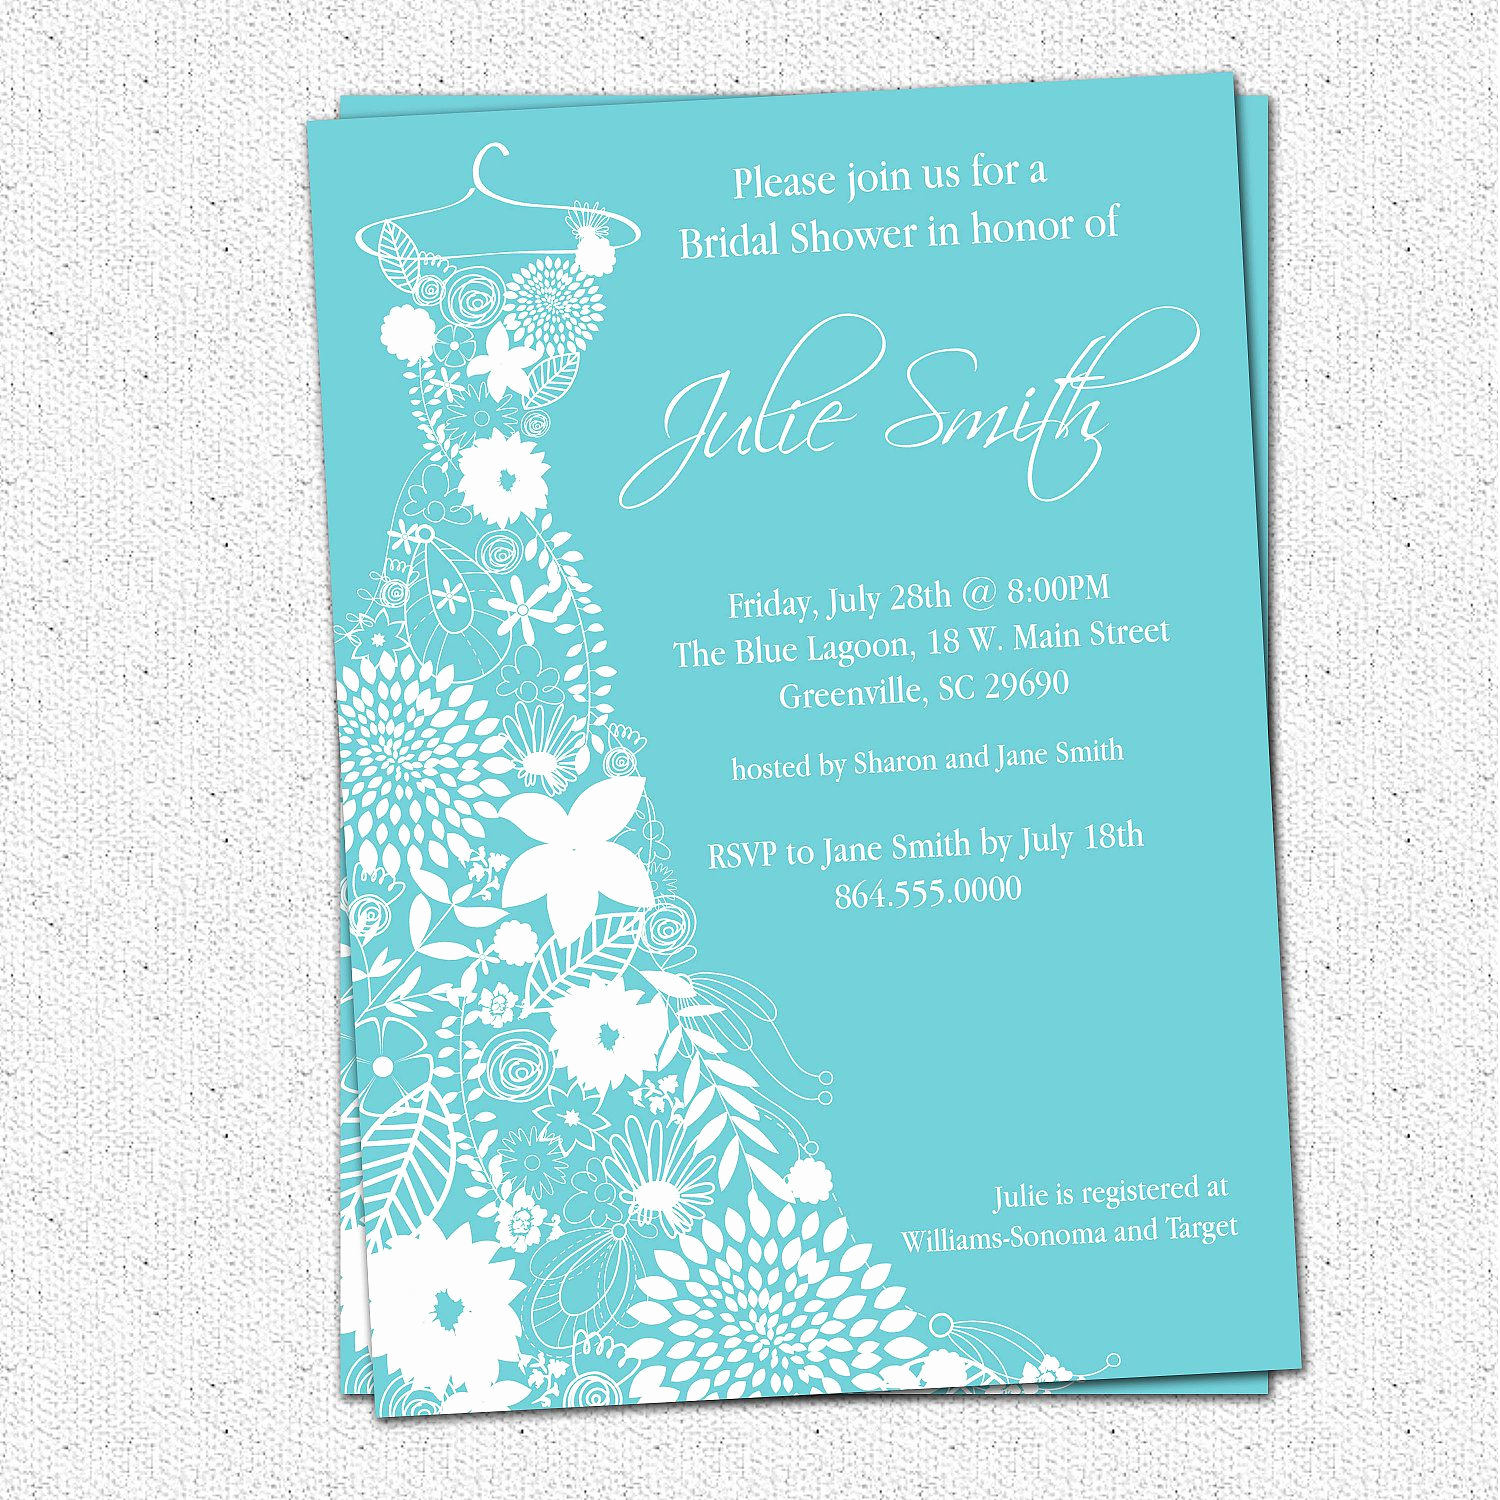 Free Bridal Shower Invitations Unique Bridal Shower Invitation Bridal Shower Invitations